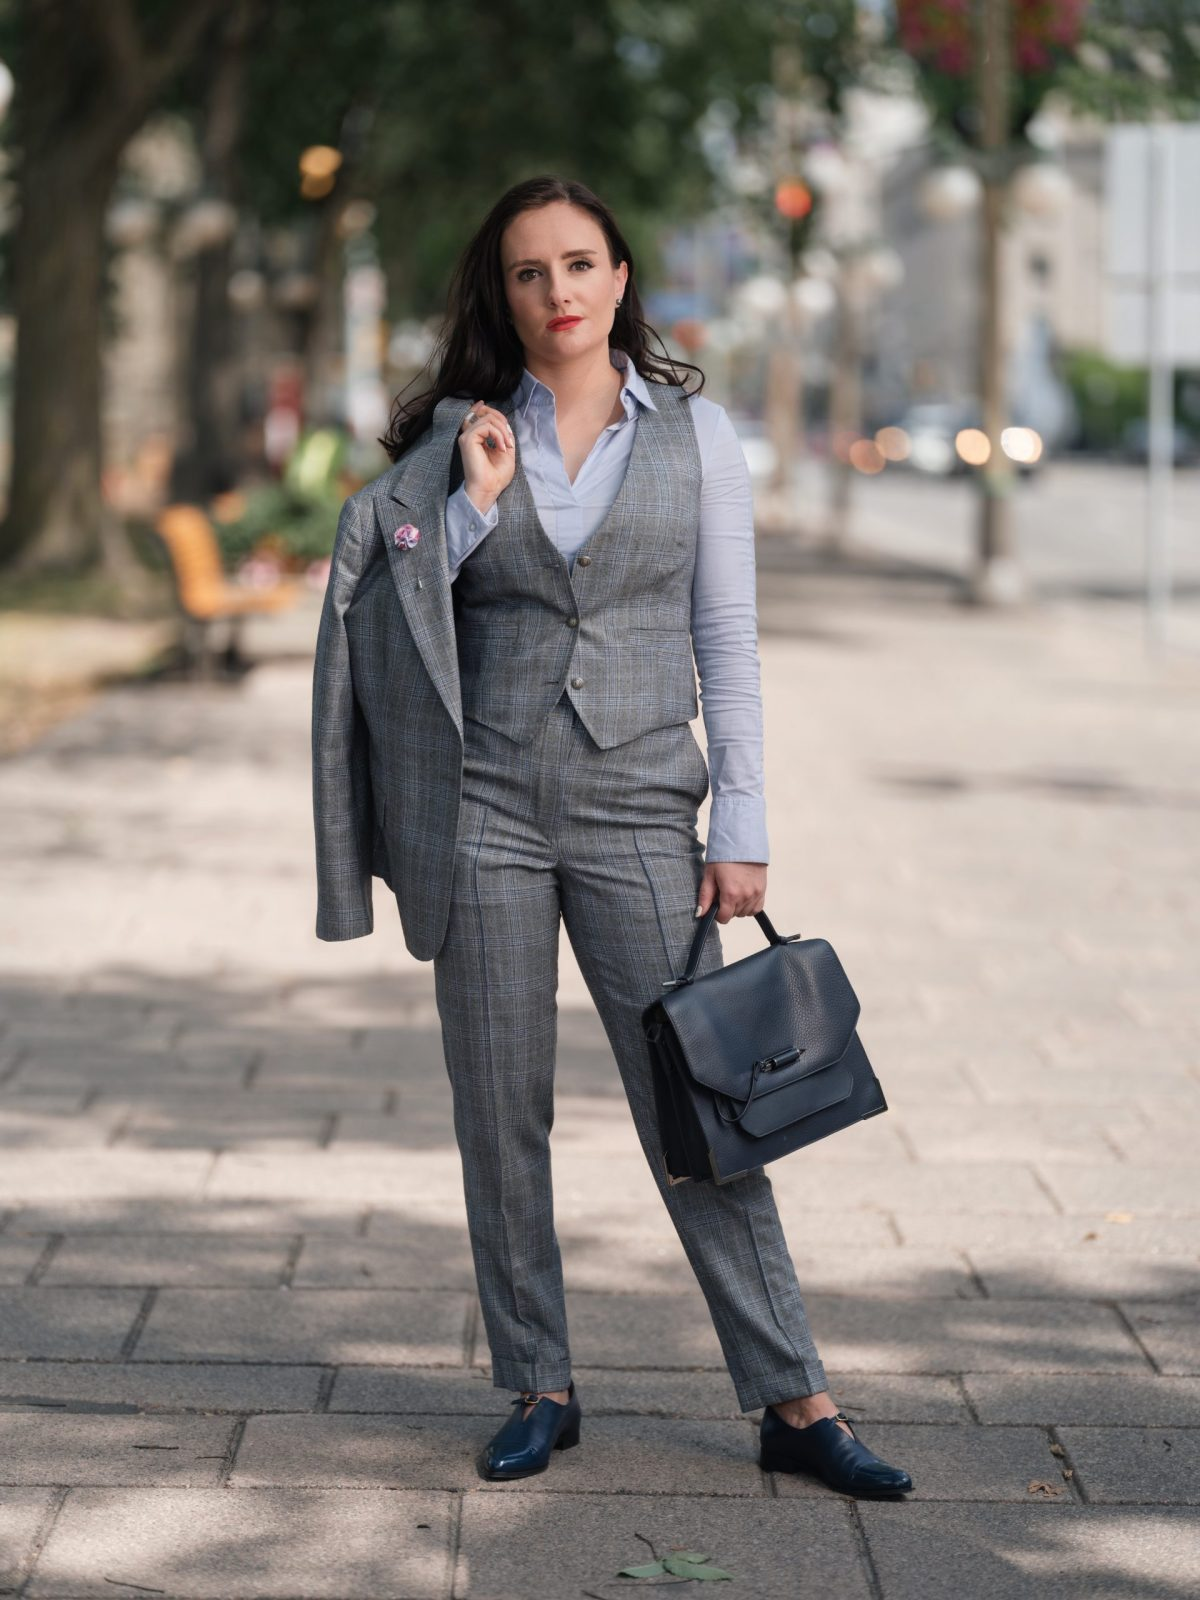 Fall Fashion 2021: Women's Suiting | Taste and Tipple